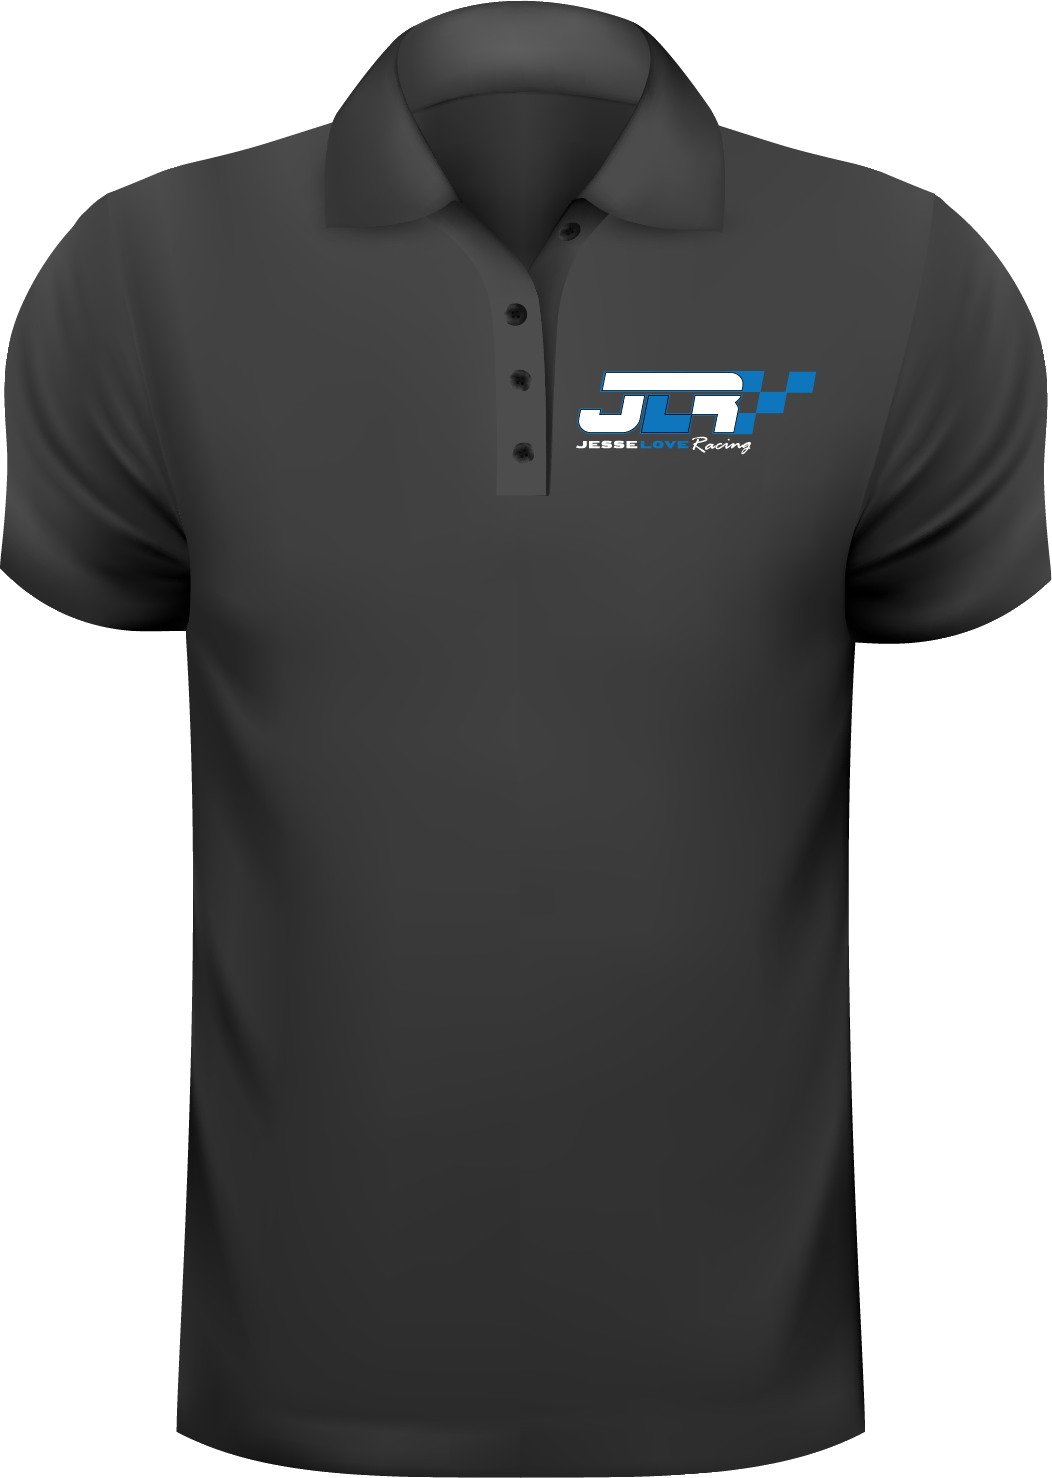 Jesse Love Embroidered Polo Shirt